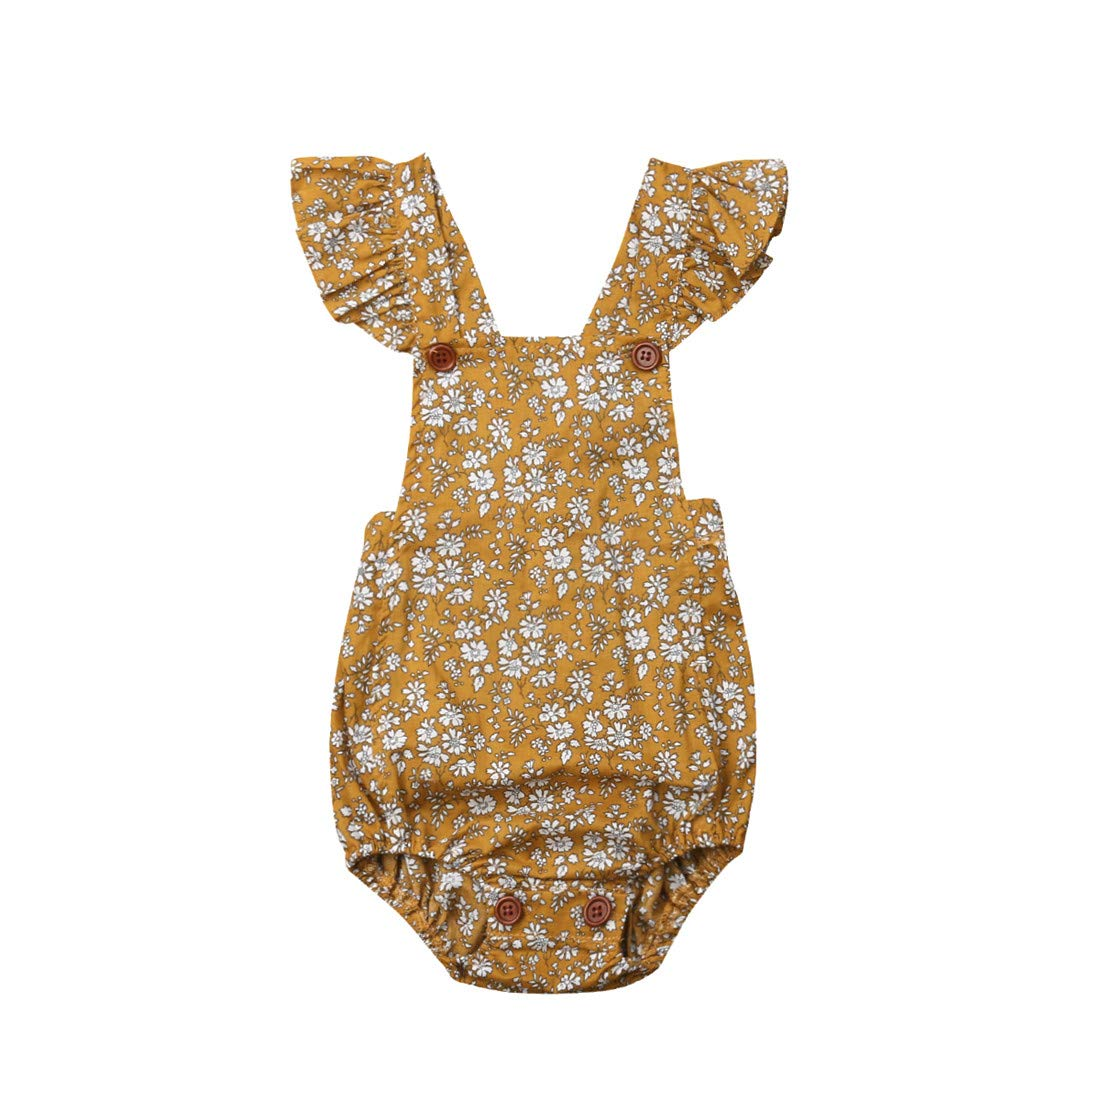 Infant Baby Girl Twins Ruffle Sleeve Floral Romper Bodysuit Bowknot Newborn Girl Clothes Outfit (Yellow Romper 2, 3-9M)